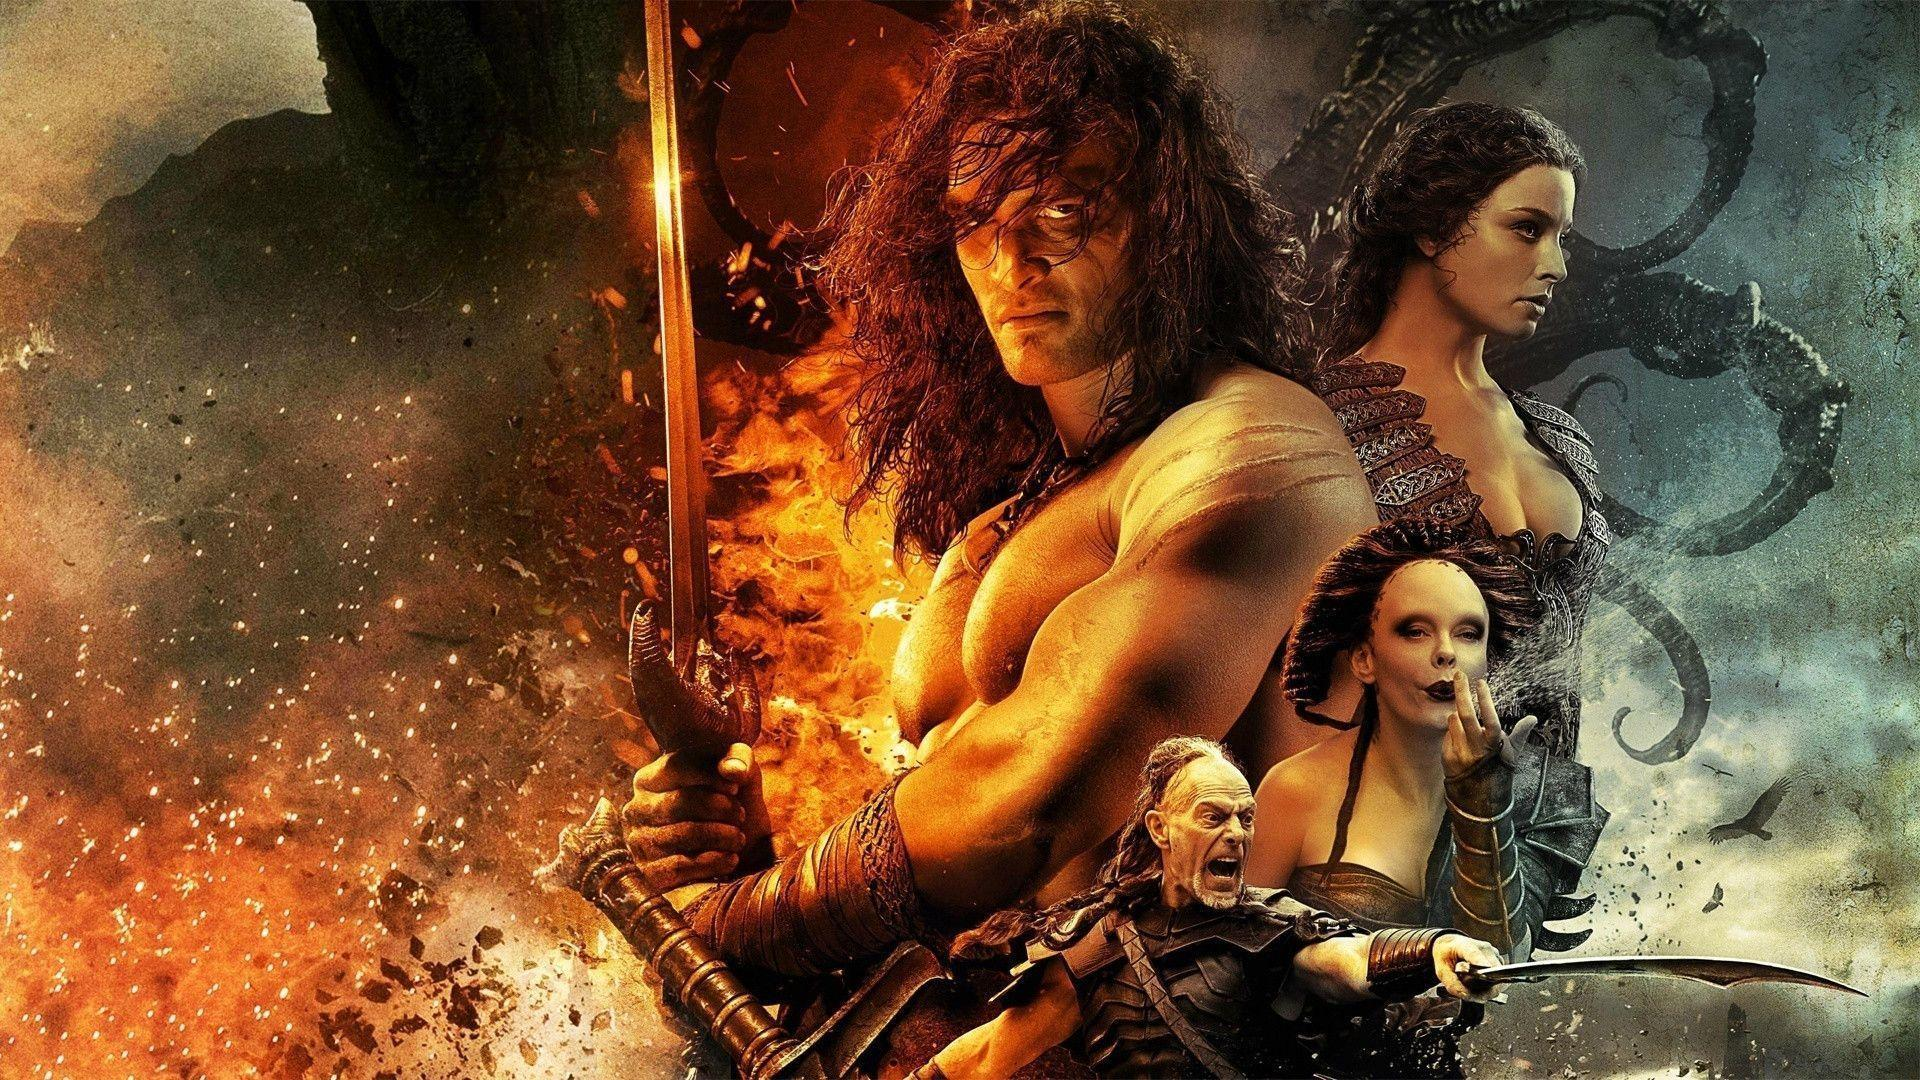 Conan The Barbarian Wallpapers - Wallpaper Cave